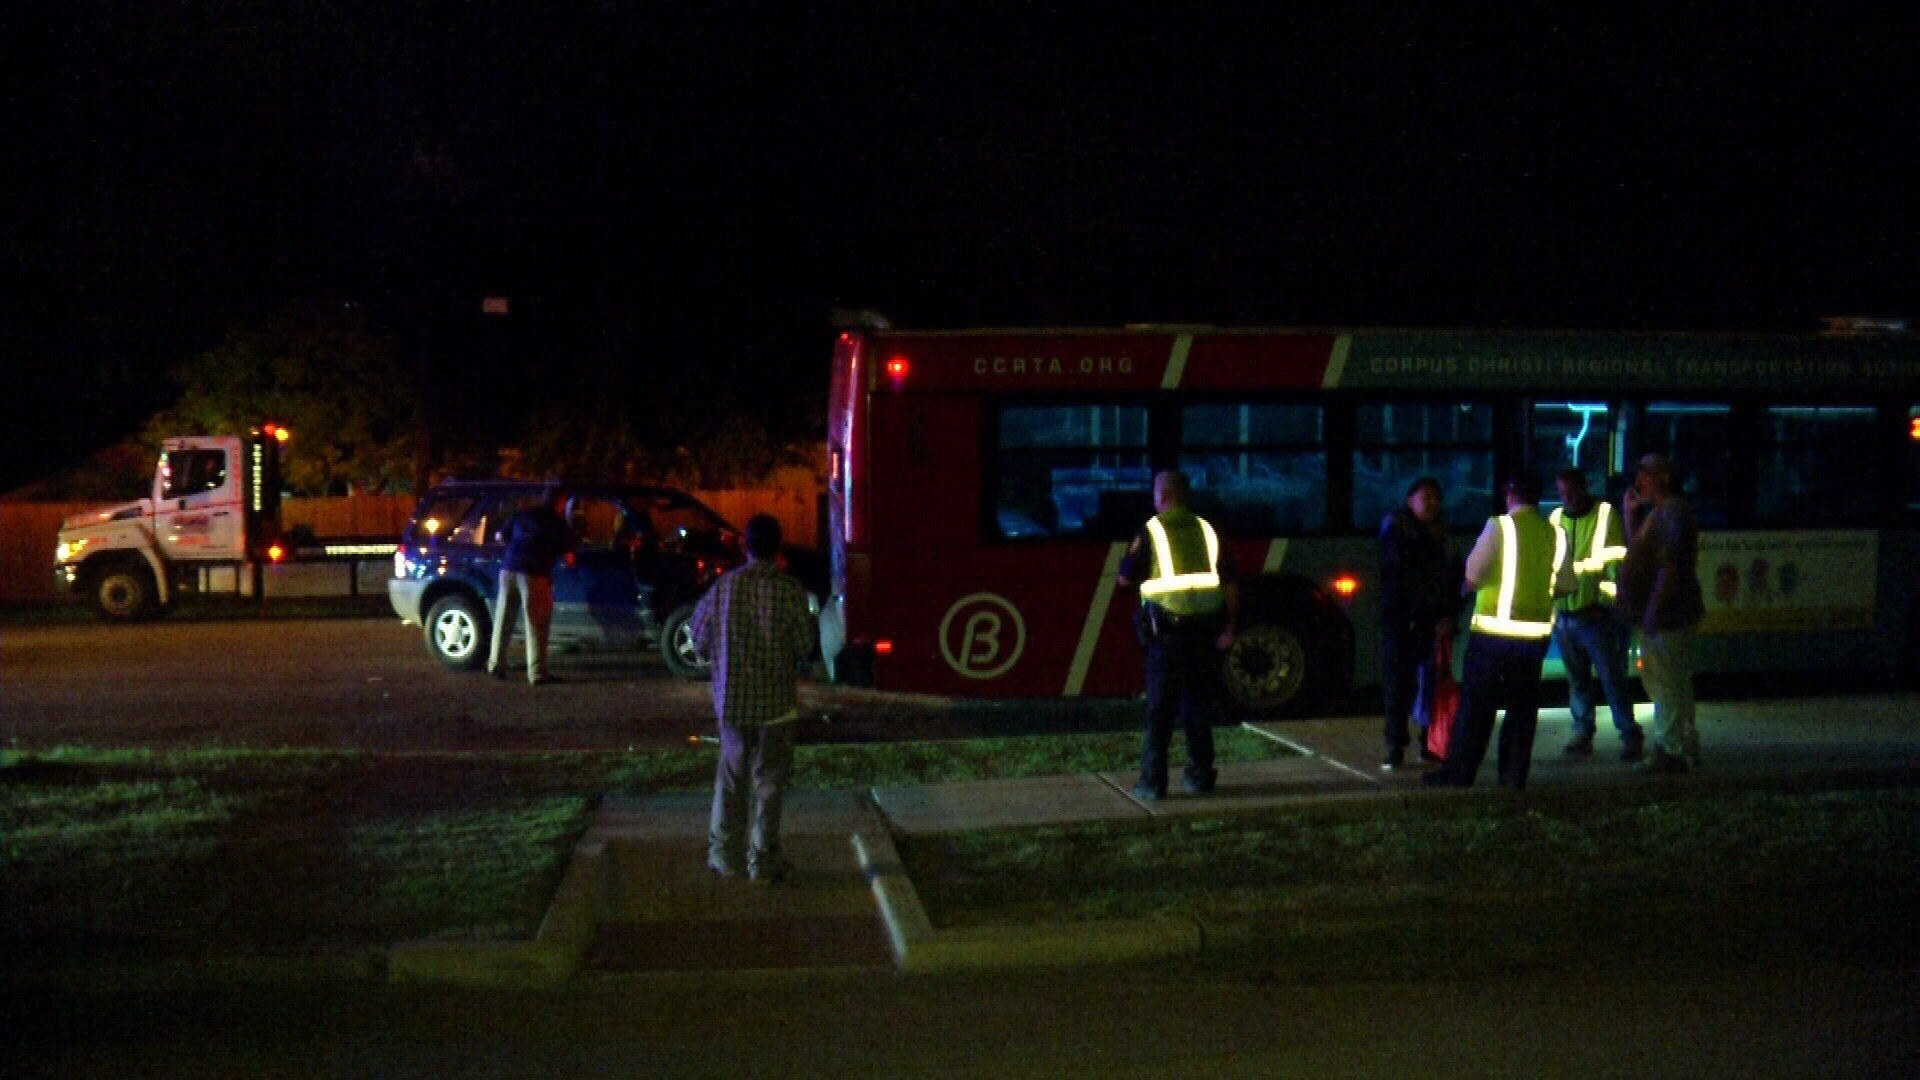 Several people were reportedly on board the bus when the crash occurred.